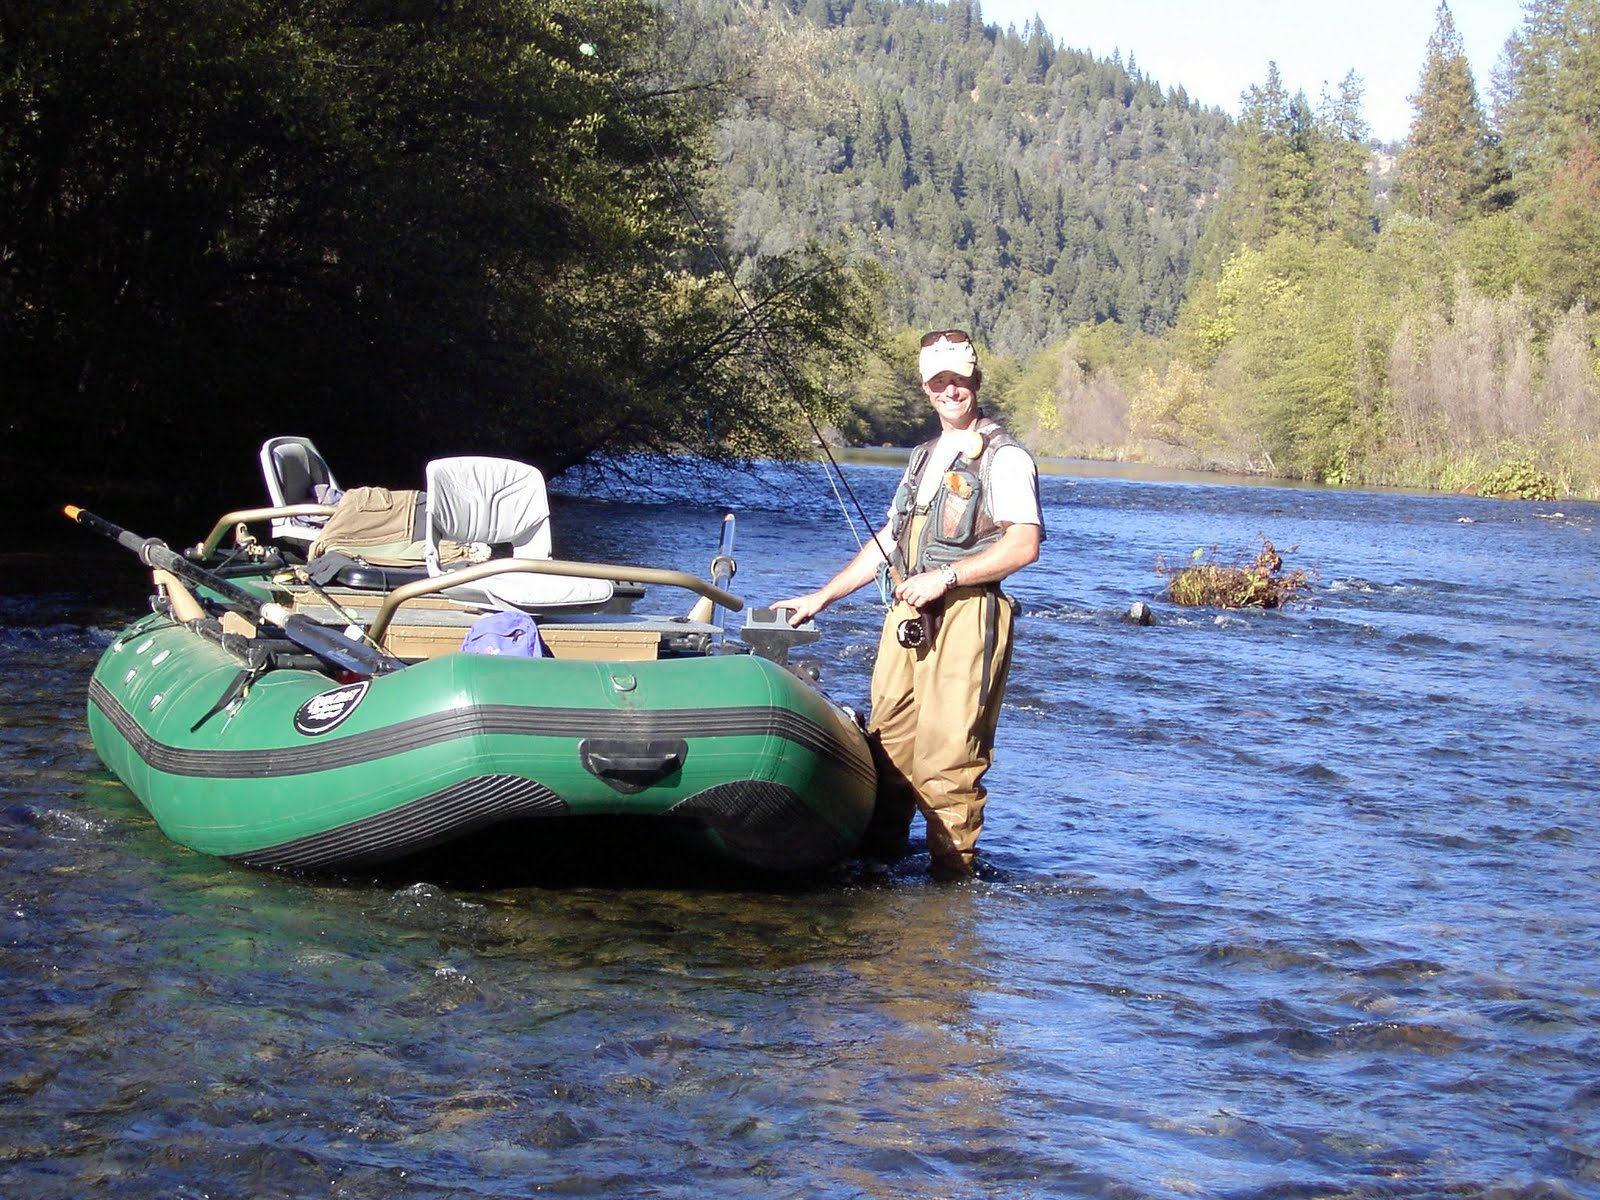 Fly fishing traditions drift boat rowing 101 part ii for Drift boat fishing